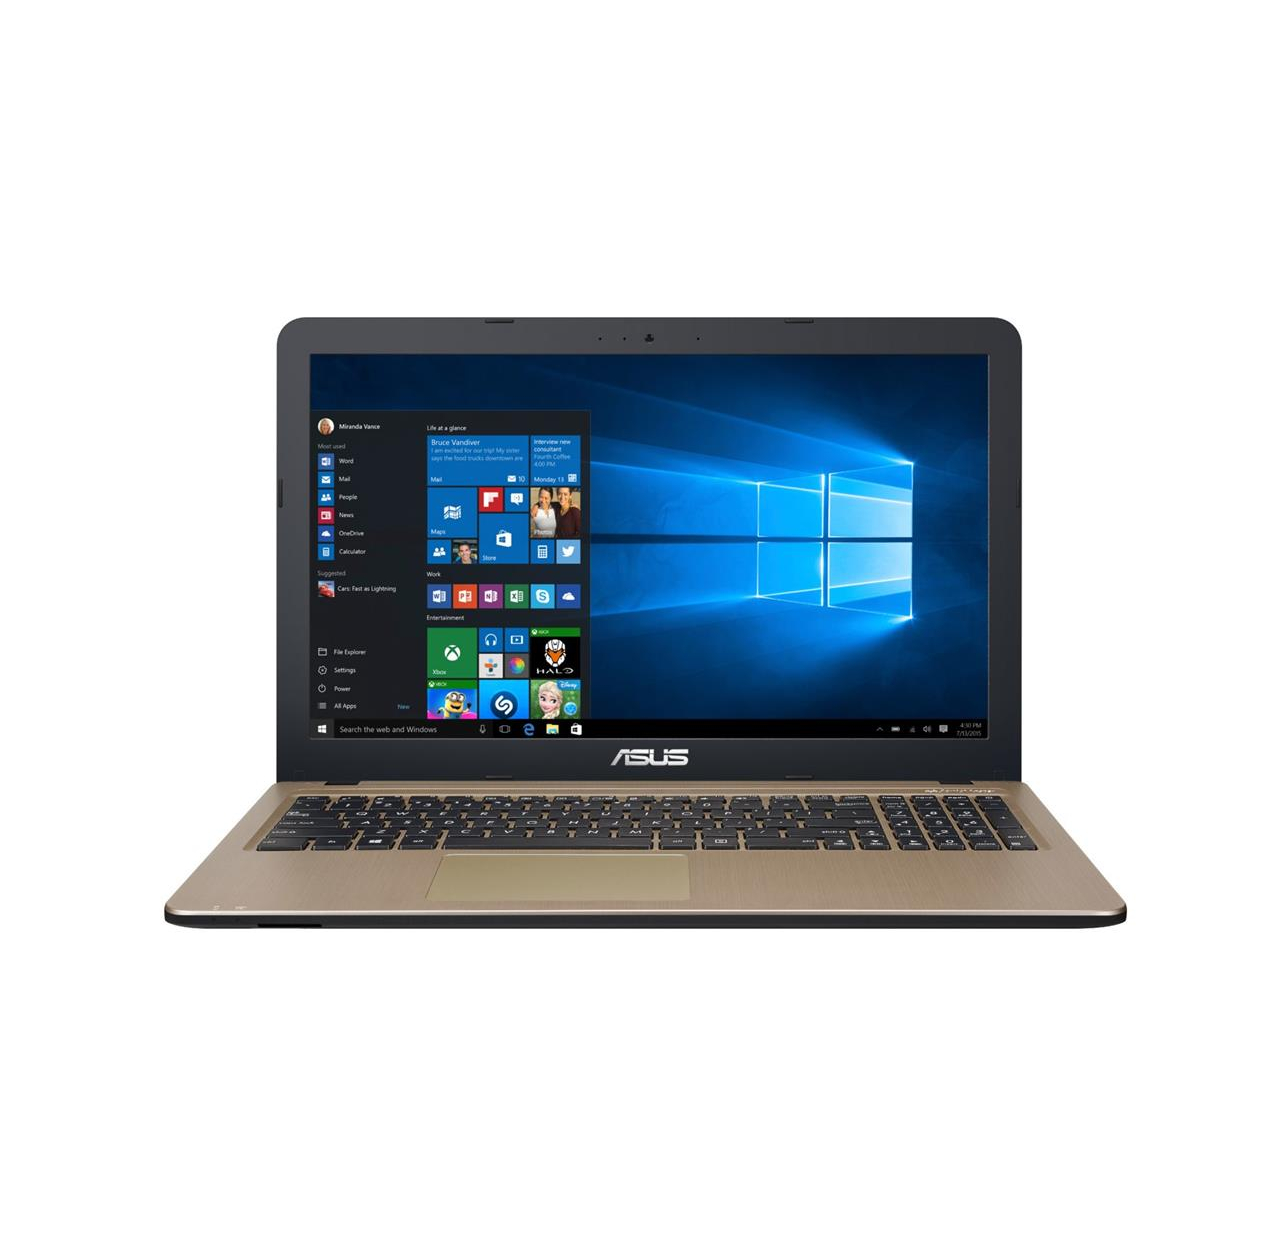 "Laptop Asus A540YA-XO683T 15,6"" E1-7010 4GB 500G"